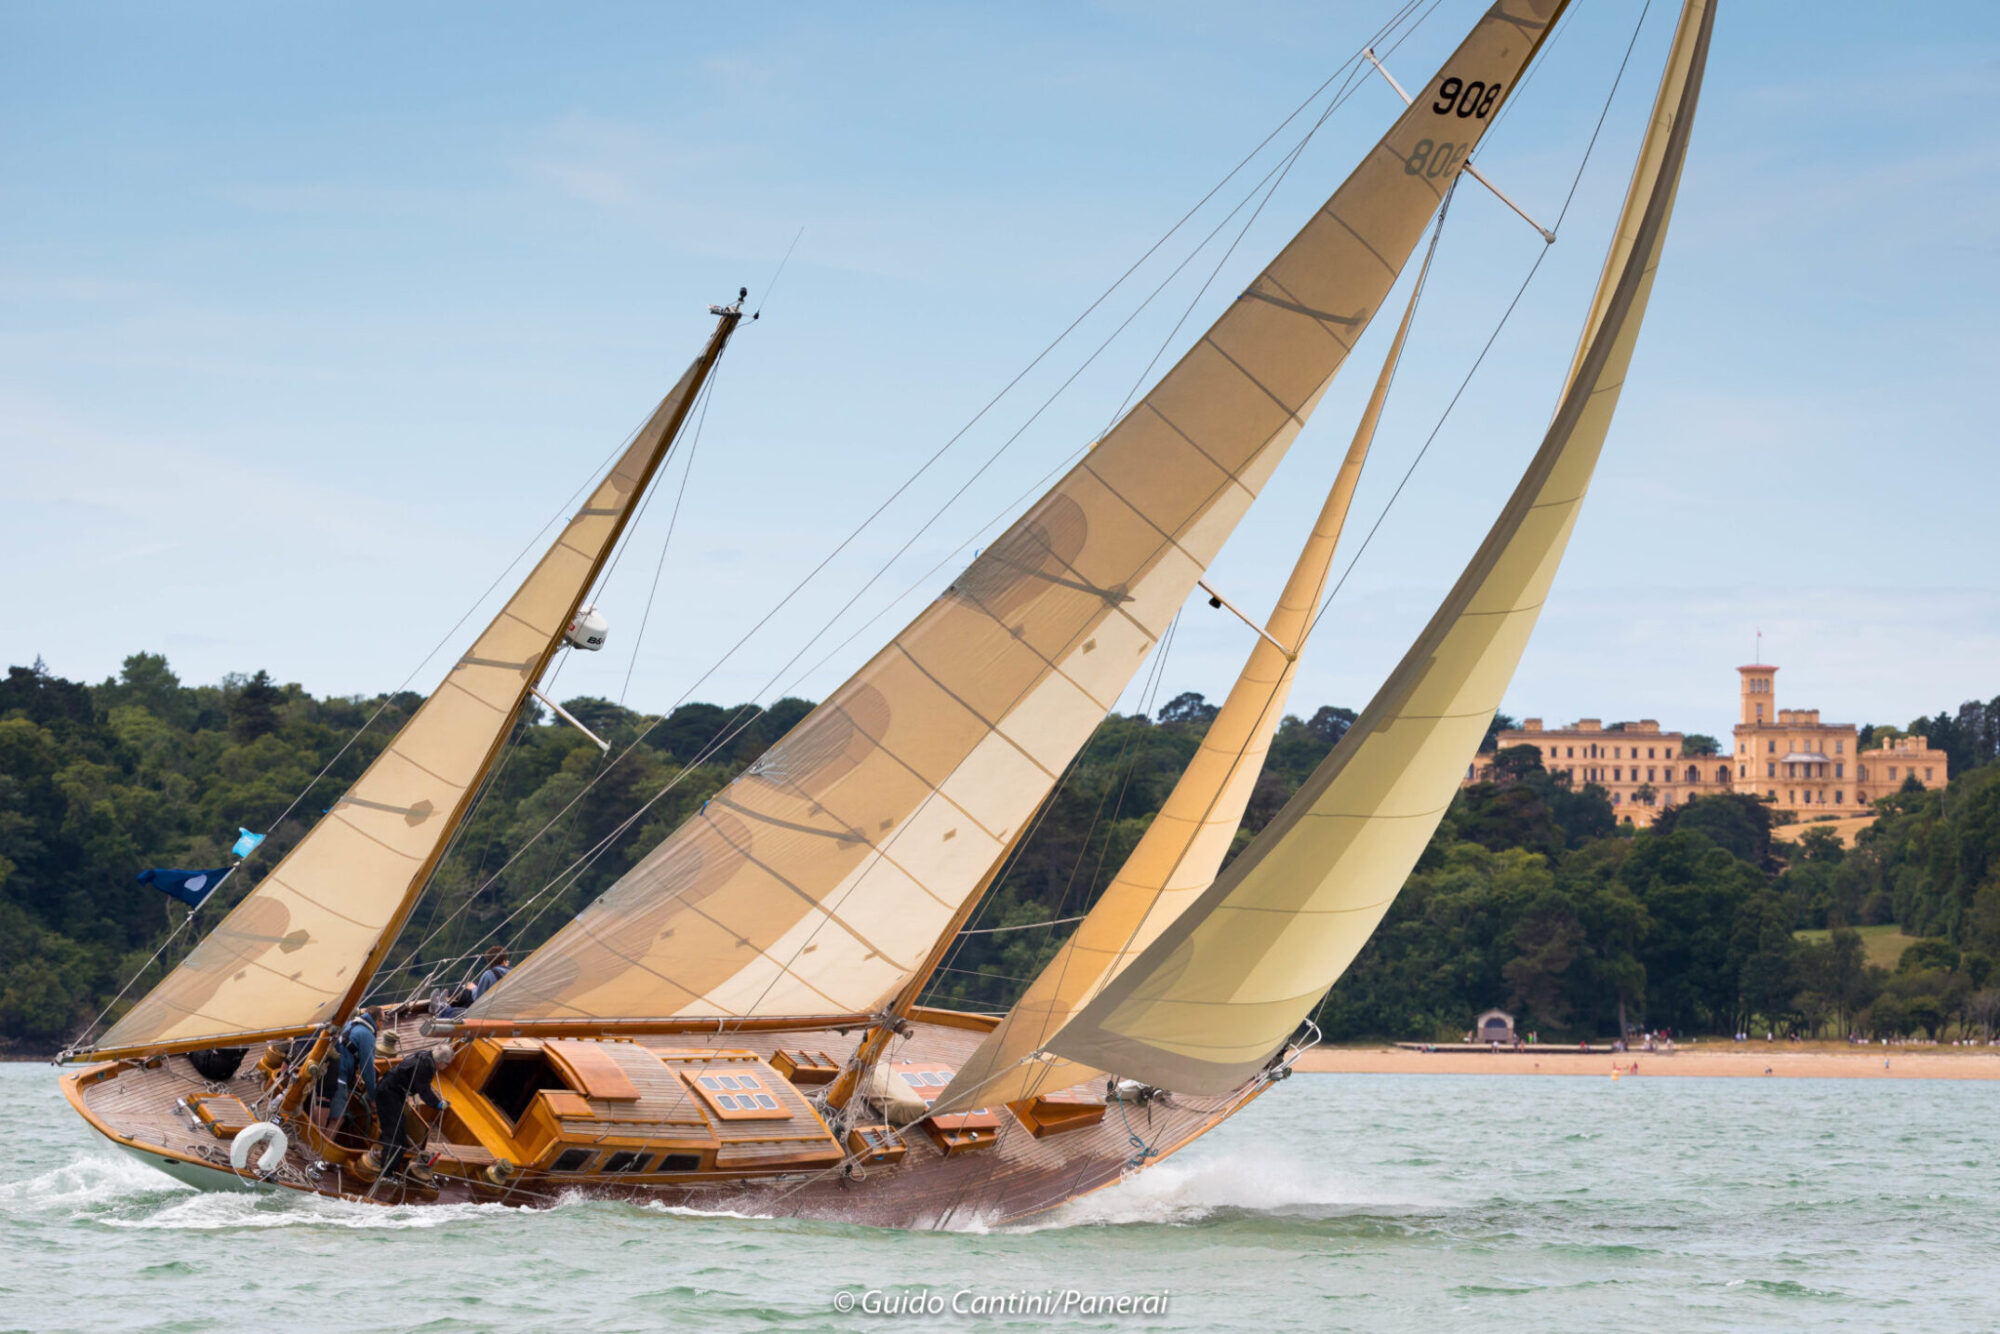 Panerai British Classic Week 2018 Photo: Guido Cantini / Panerai